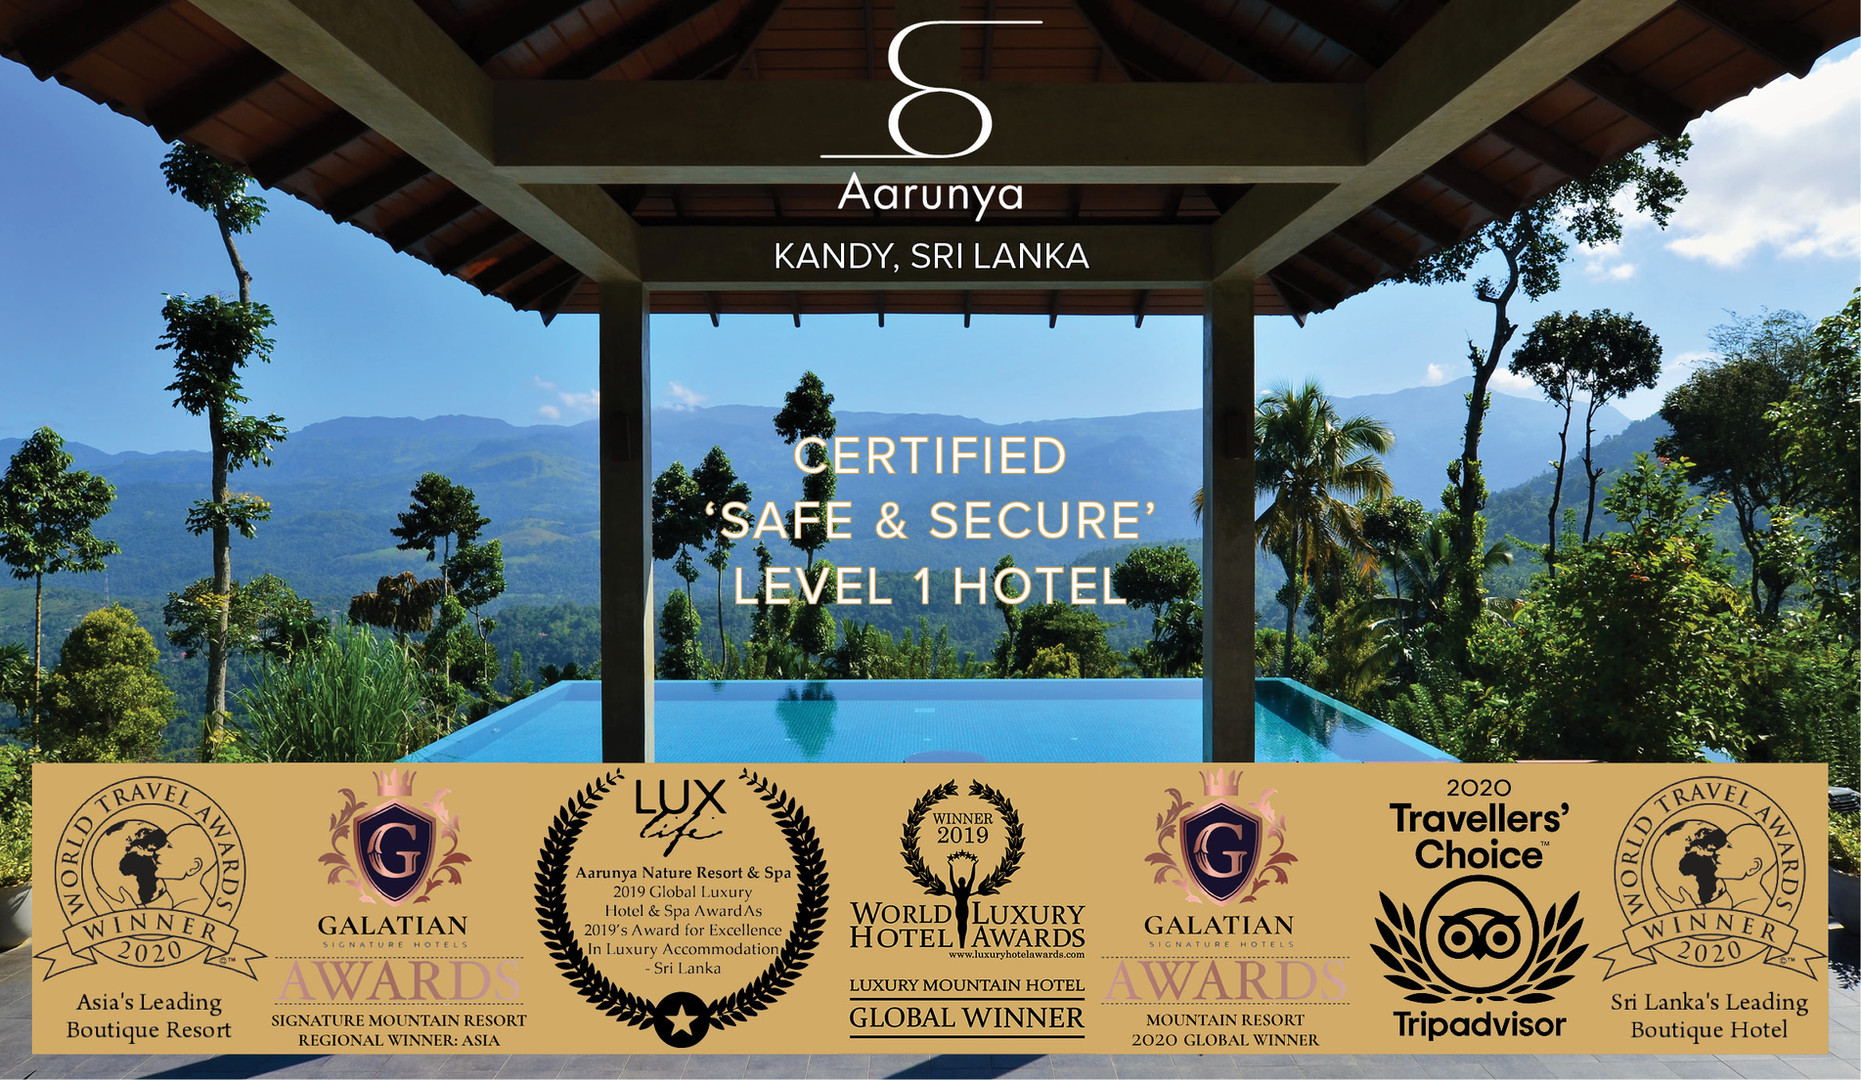 Aarunya is a Level 1 'Safe and Secure' Certified Hote